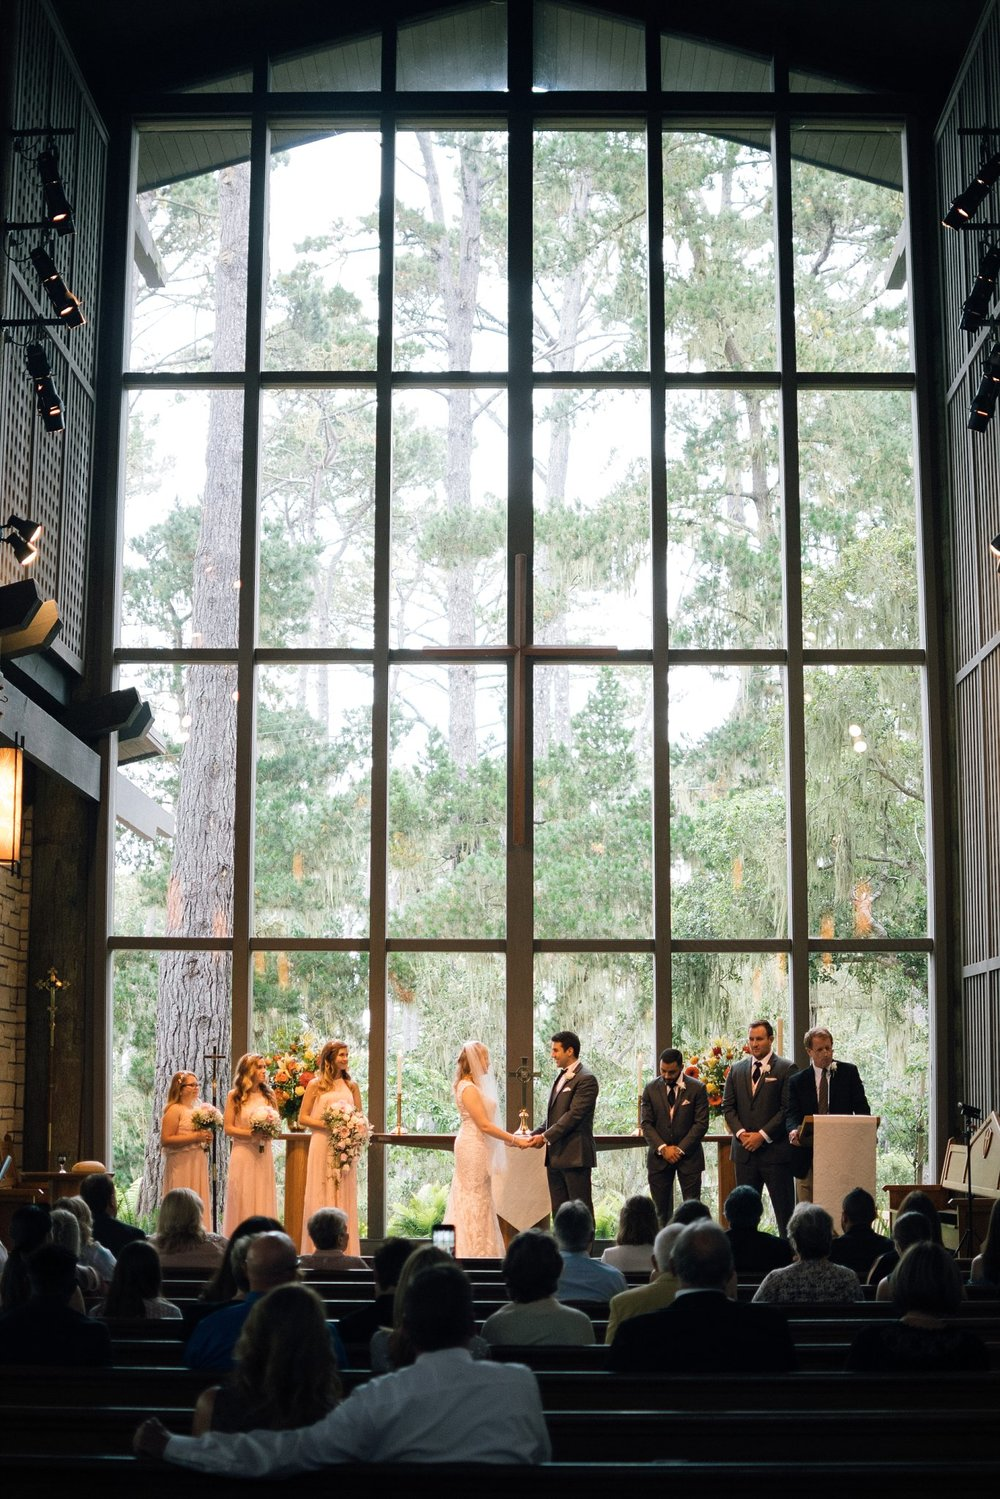 monterey-wedding-photographer-pebble-beach-church-in-the-forest-wedding-bride-groom-morgan-anthony_0020.jpg